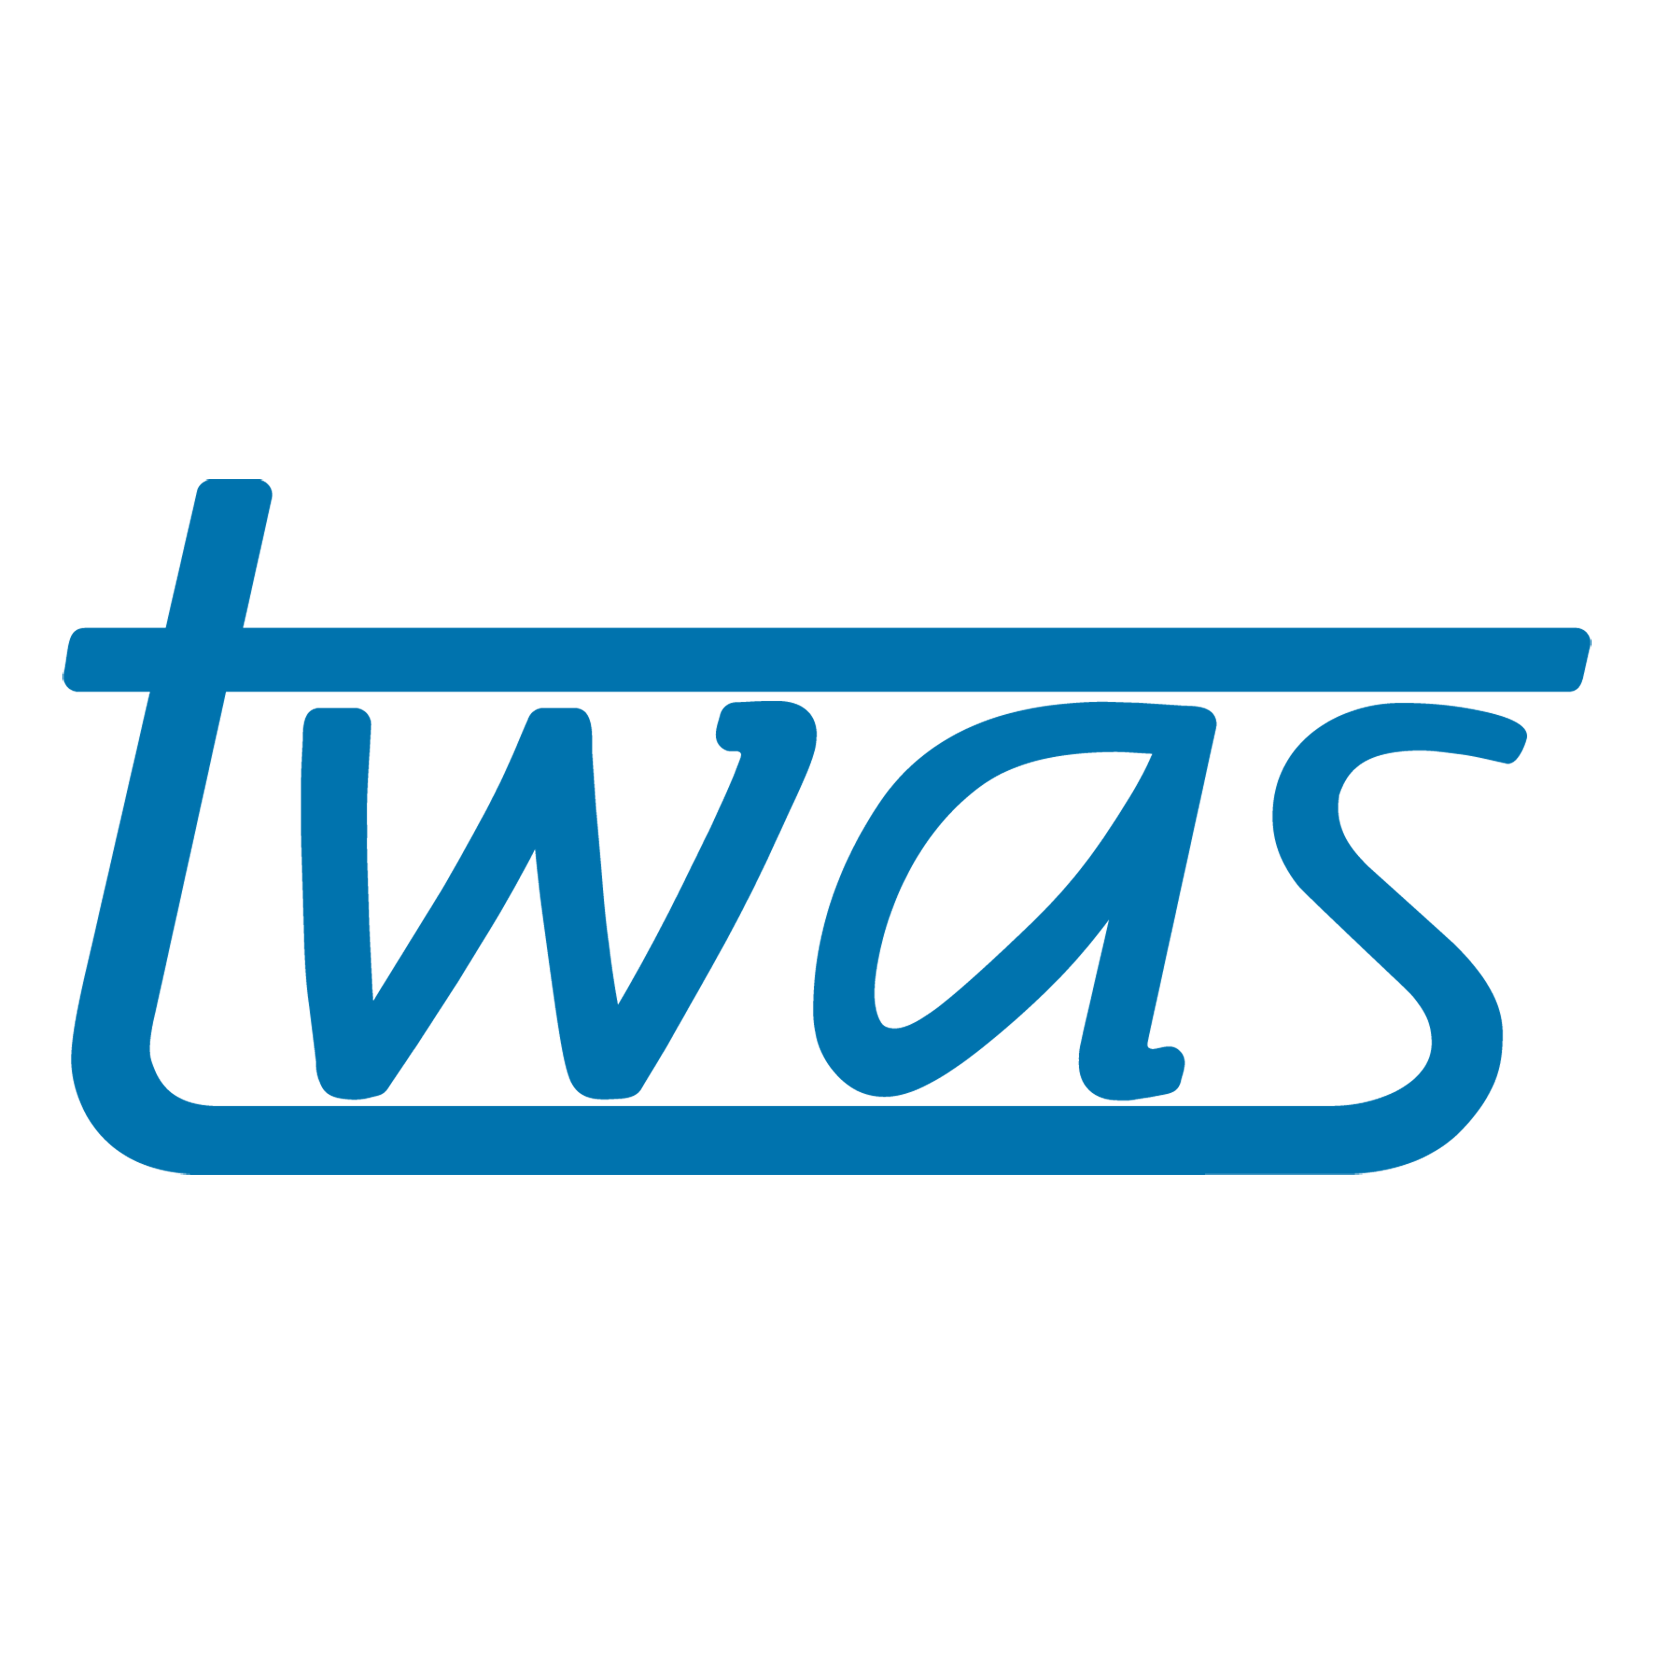 TWAS Fellowships for Research and Advanced Training 2017/2018